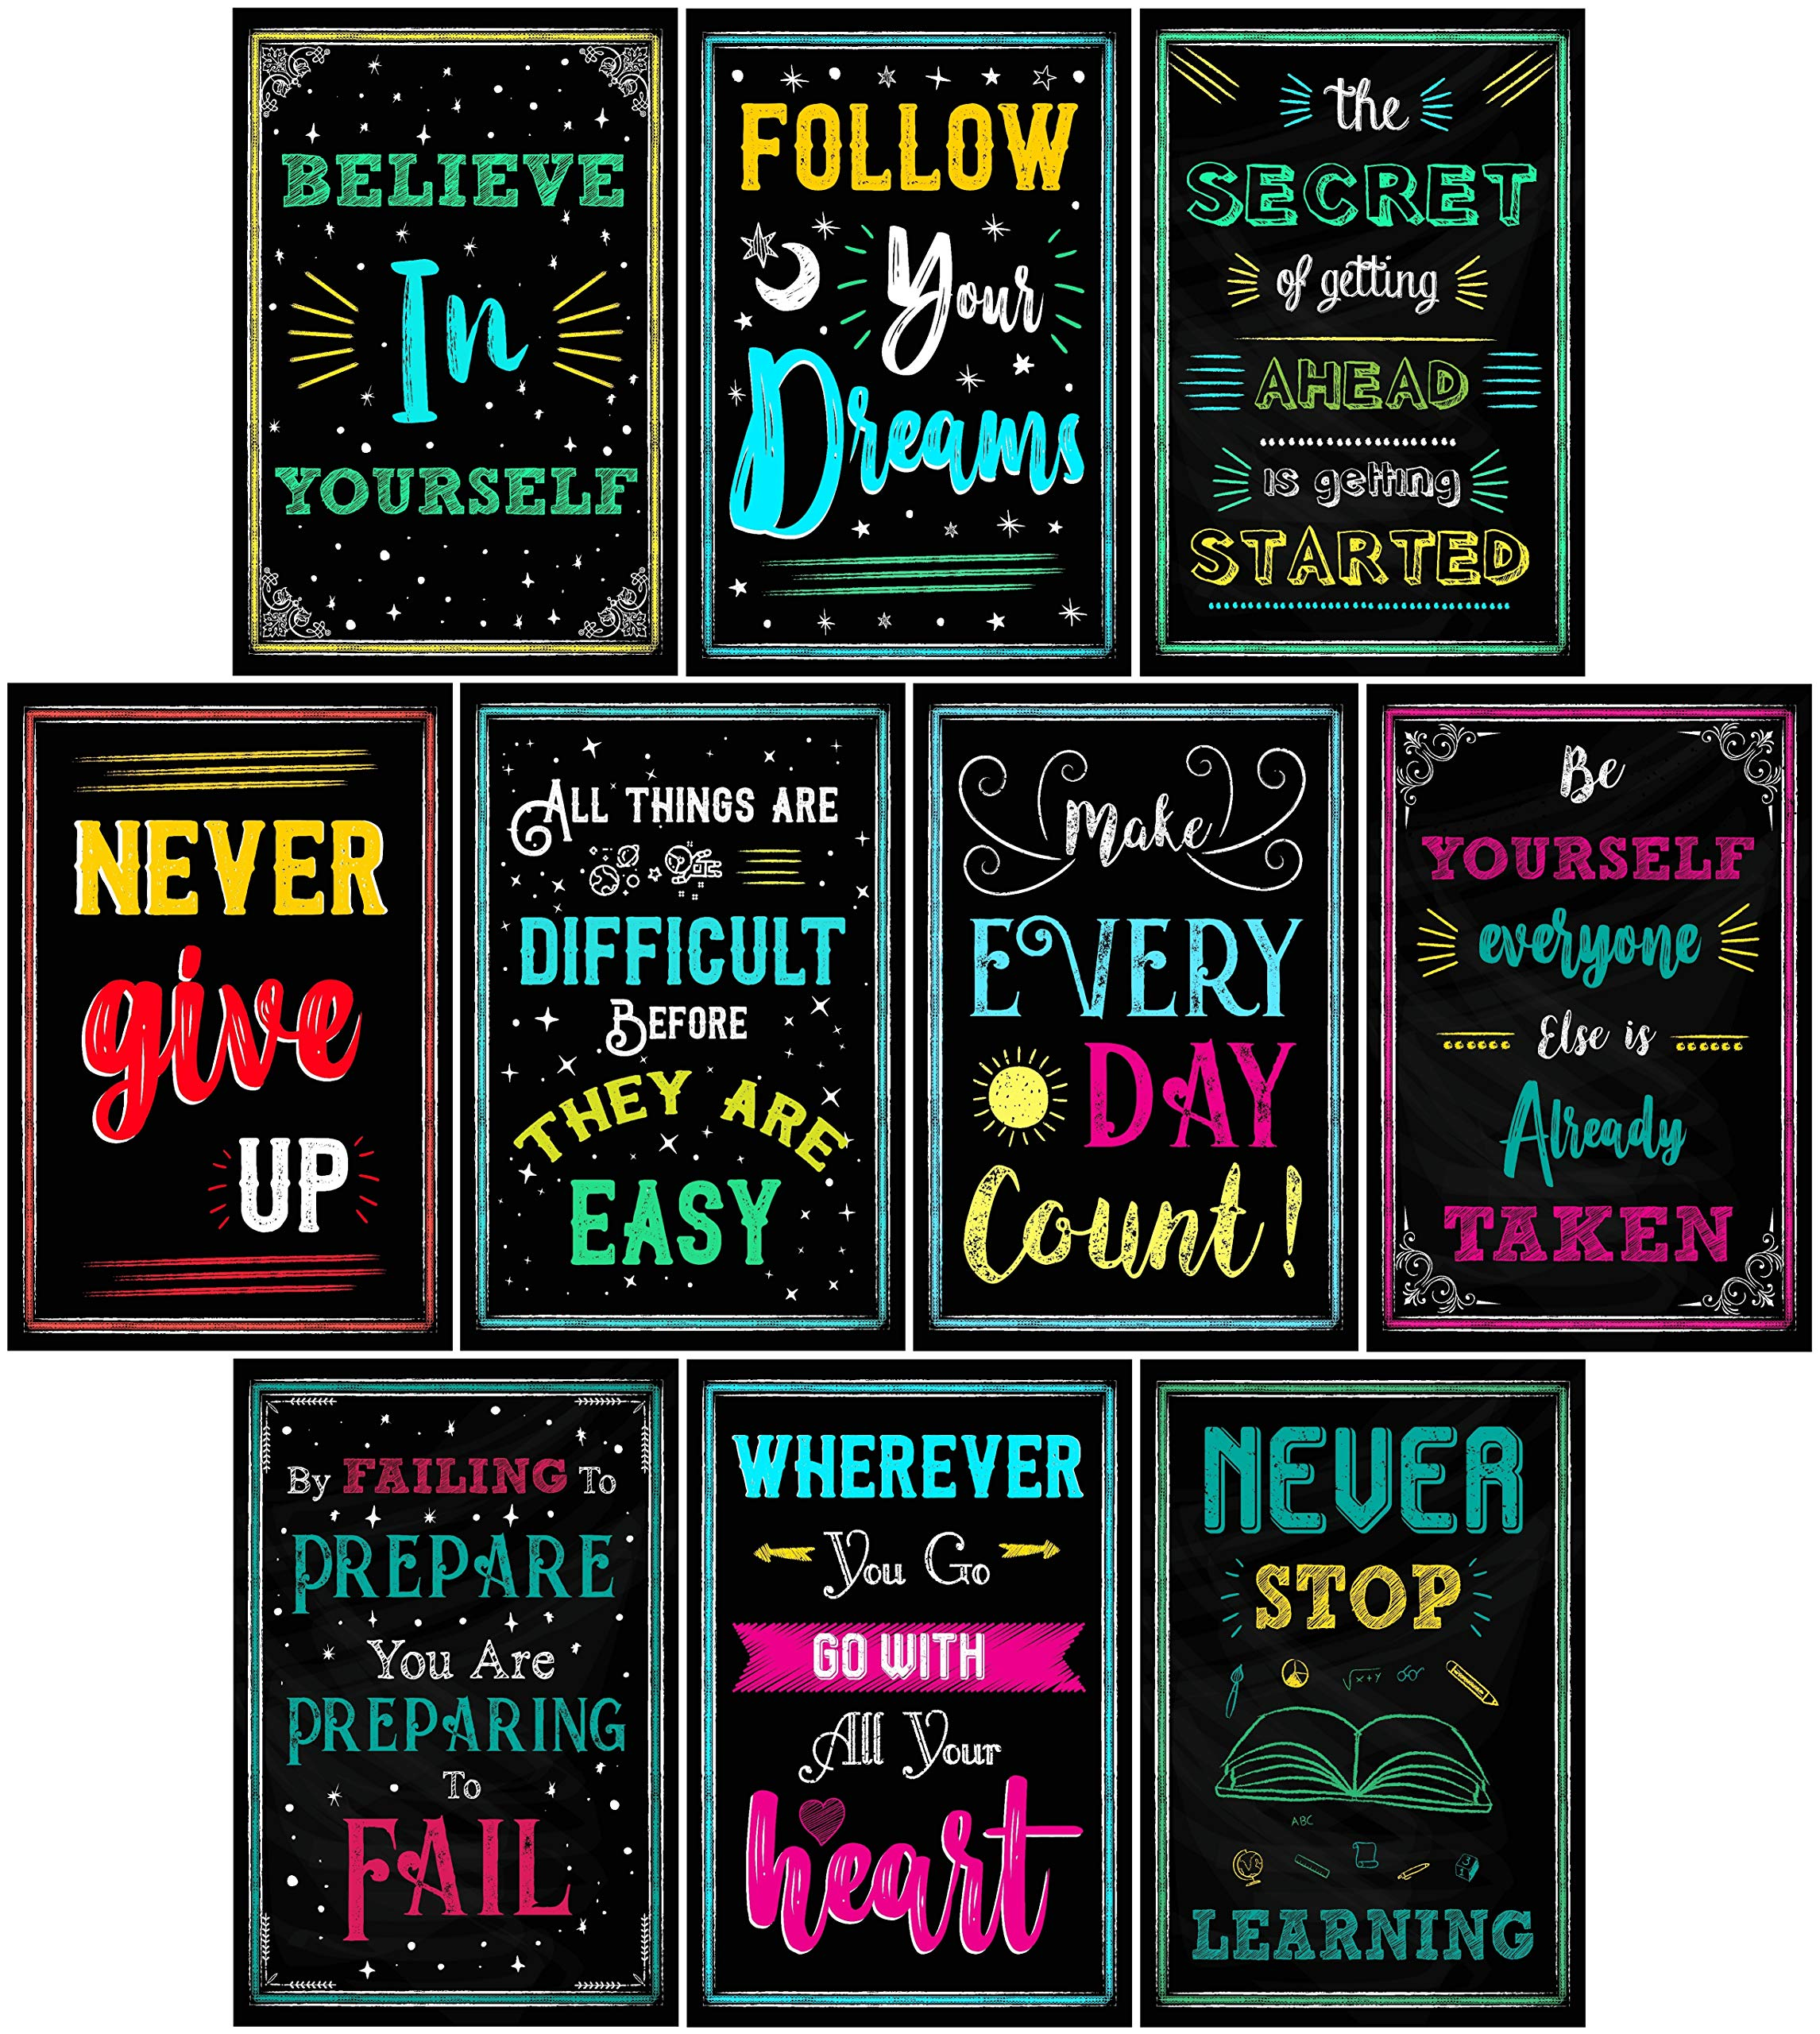 Motivational Posters for Classroom & Office Decorations | Inspirational Quote Wall Art for Teachers, Students, School Counselors, Home & Office | Set of 10 Creative Chalkboard Designs (Set Two) by L & O Goods